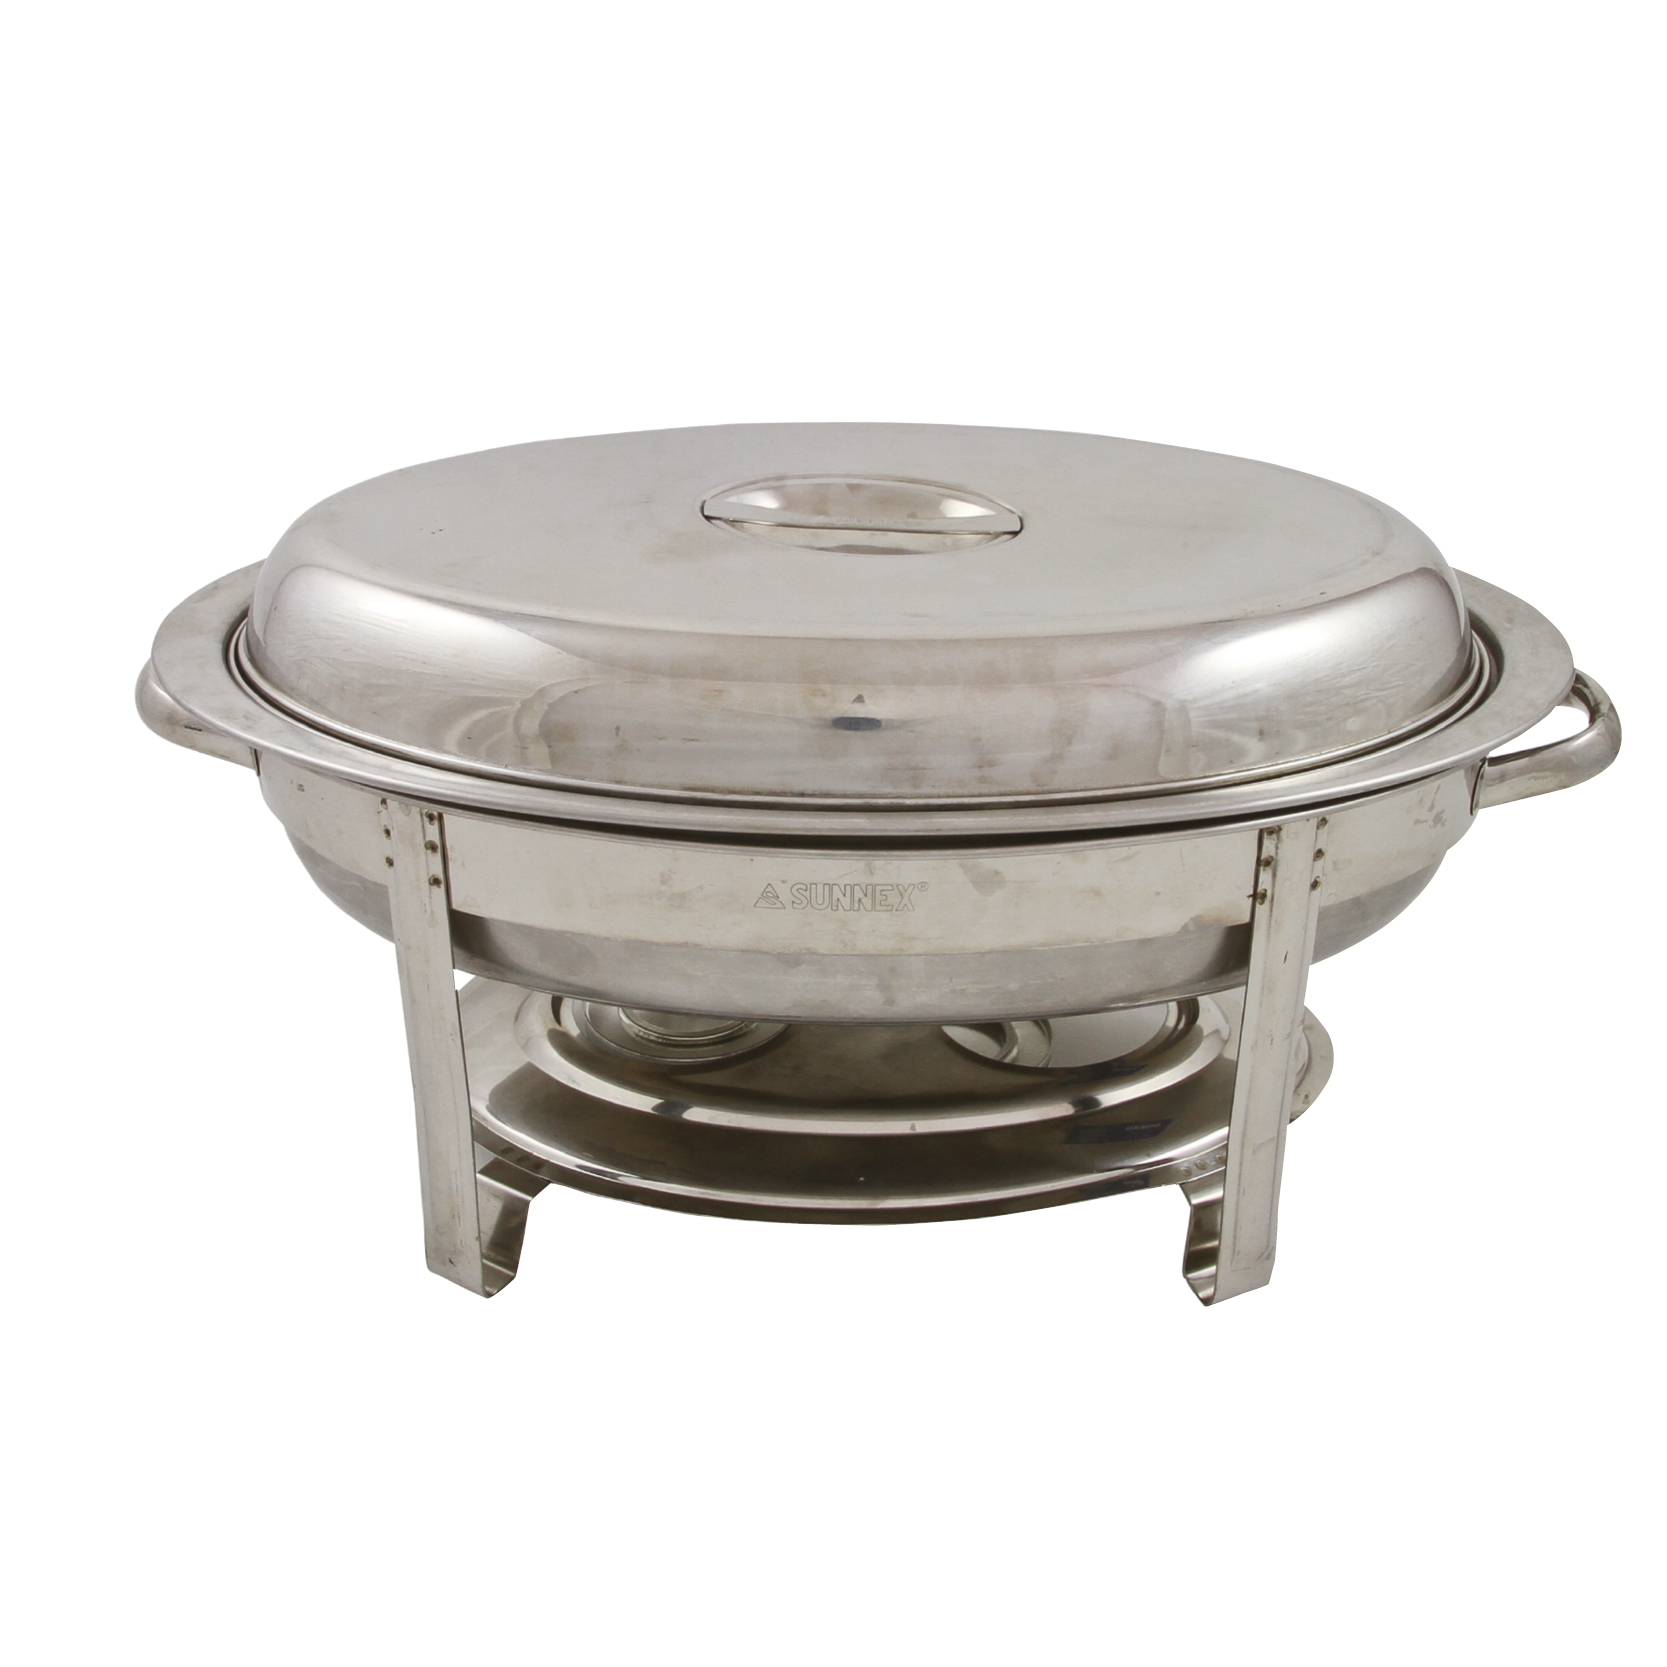 C2000 Oval Chafing Dish